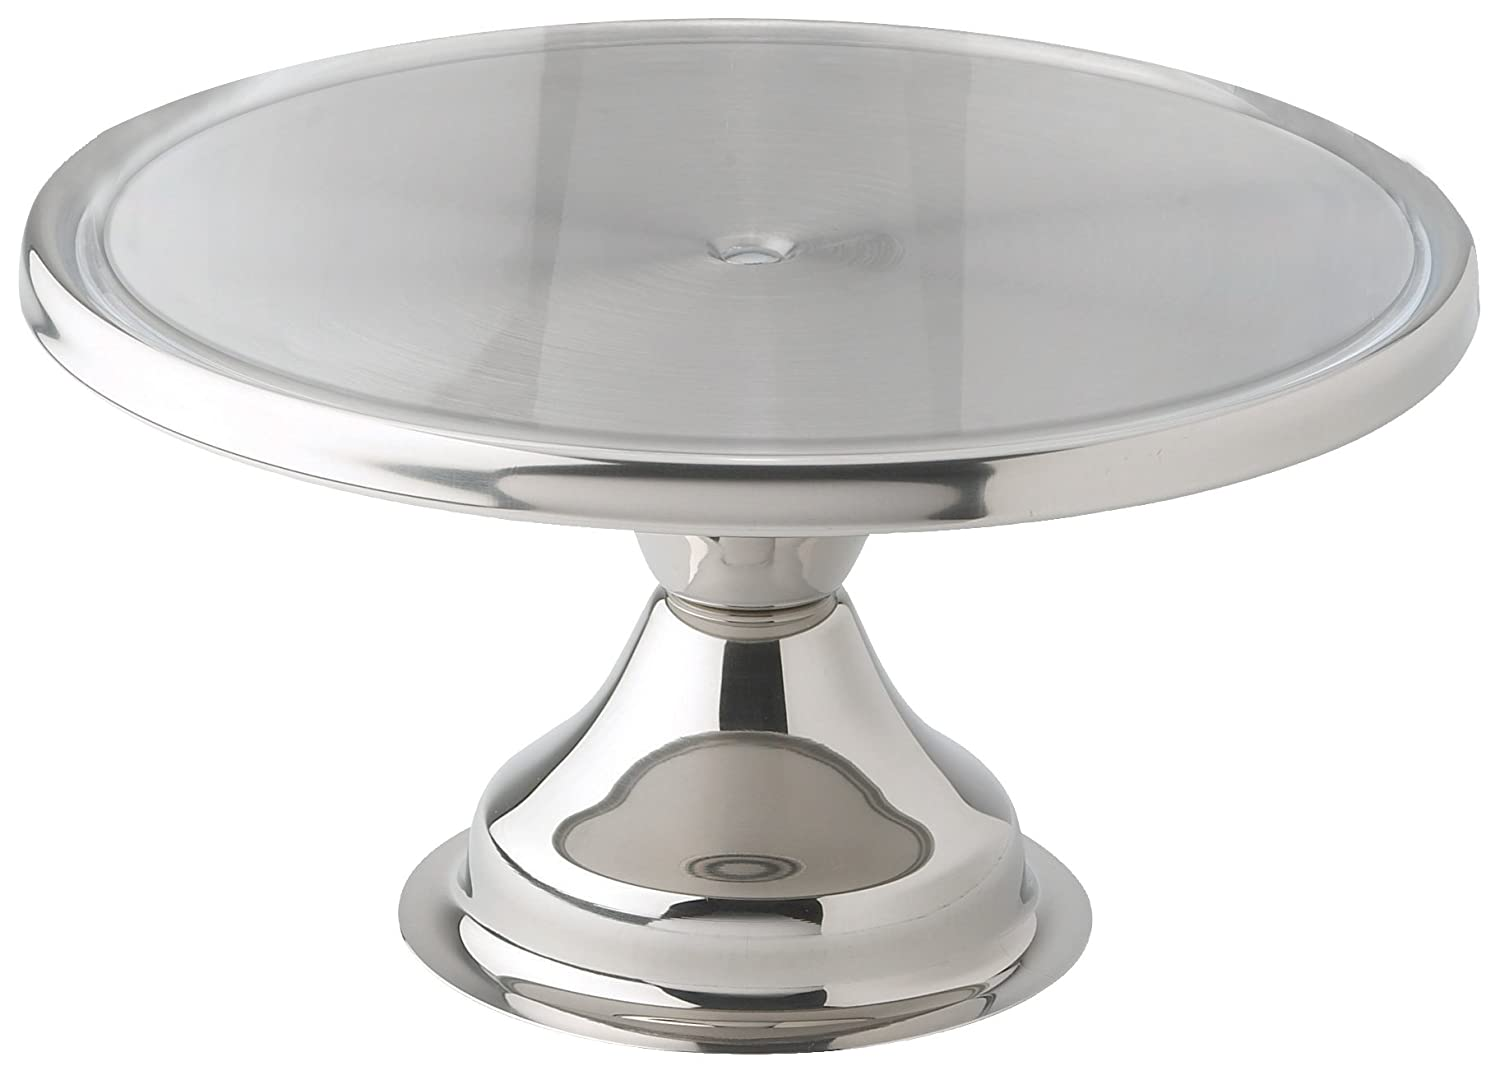 Winco CKS-13 Stainless Steel Round Cake Stand, 13-Inch Winco USA